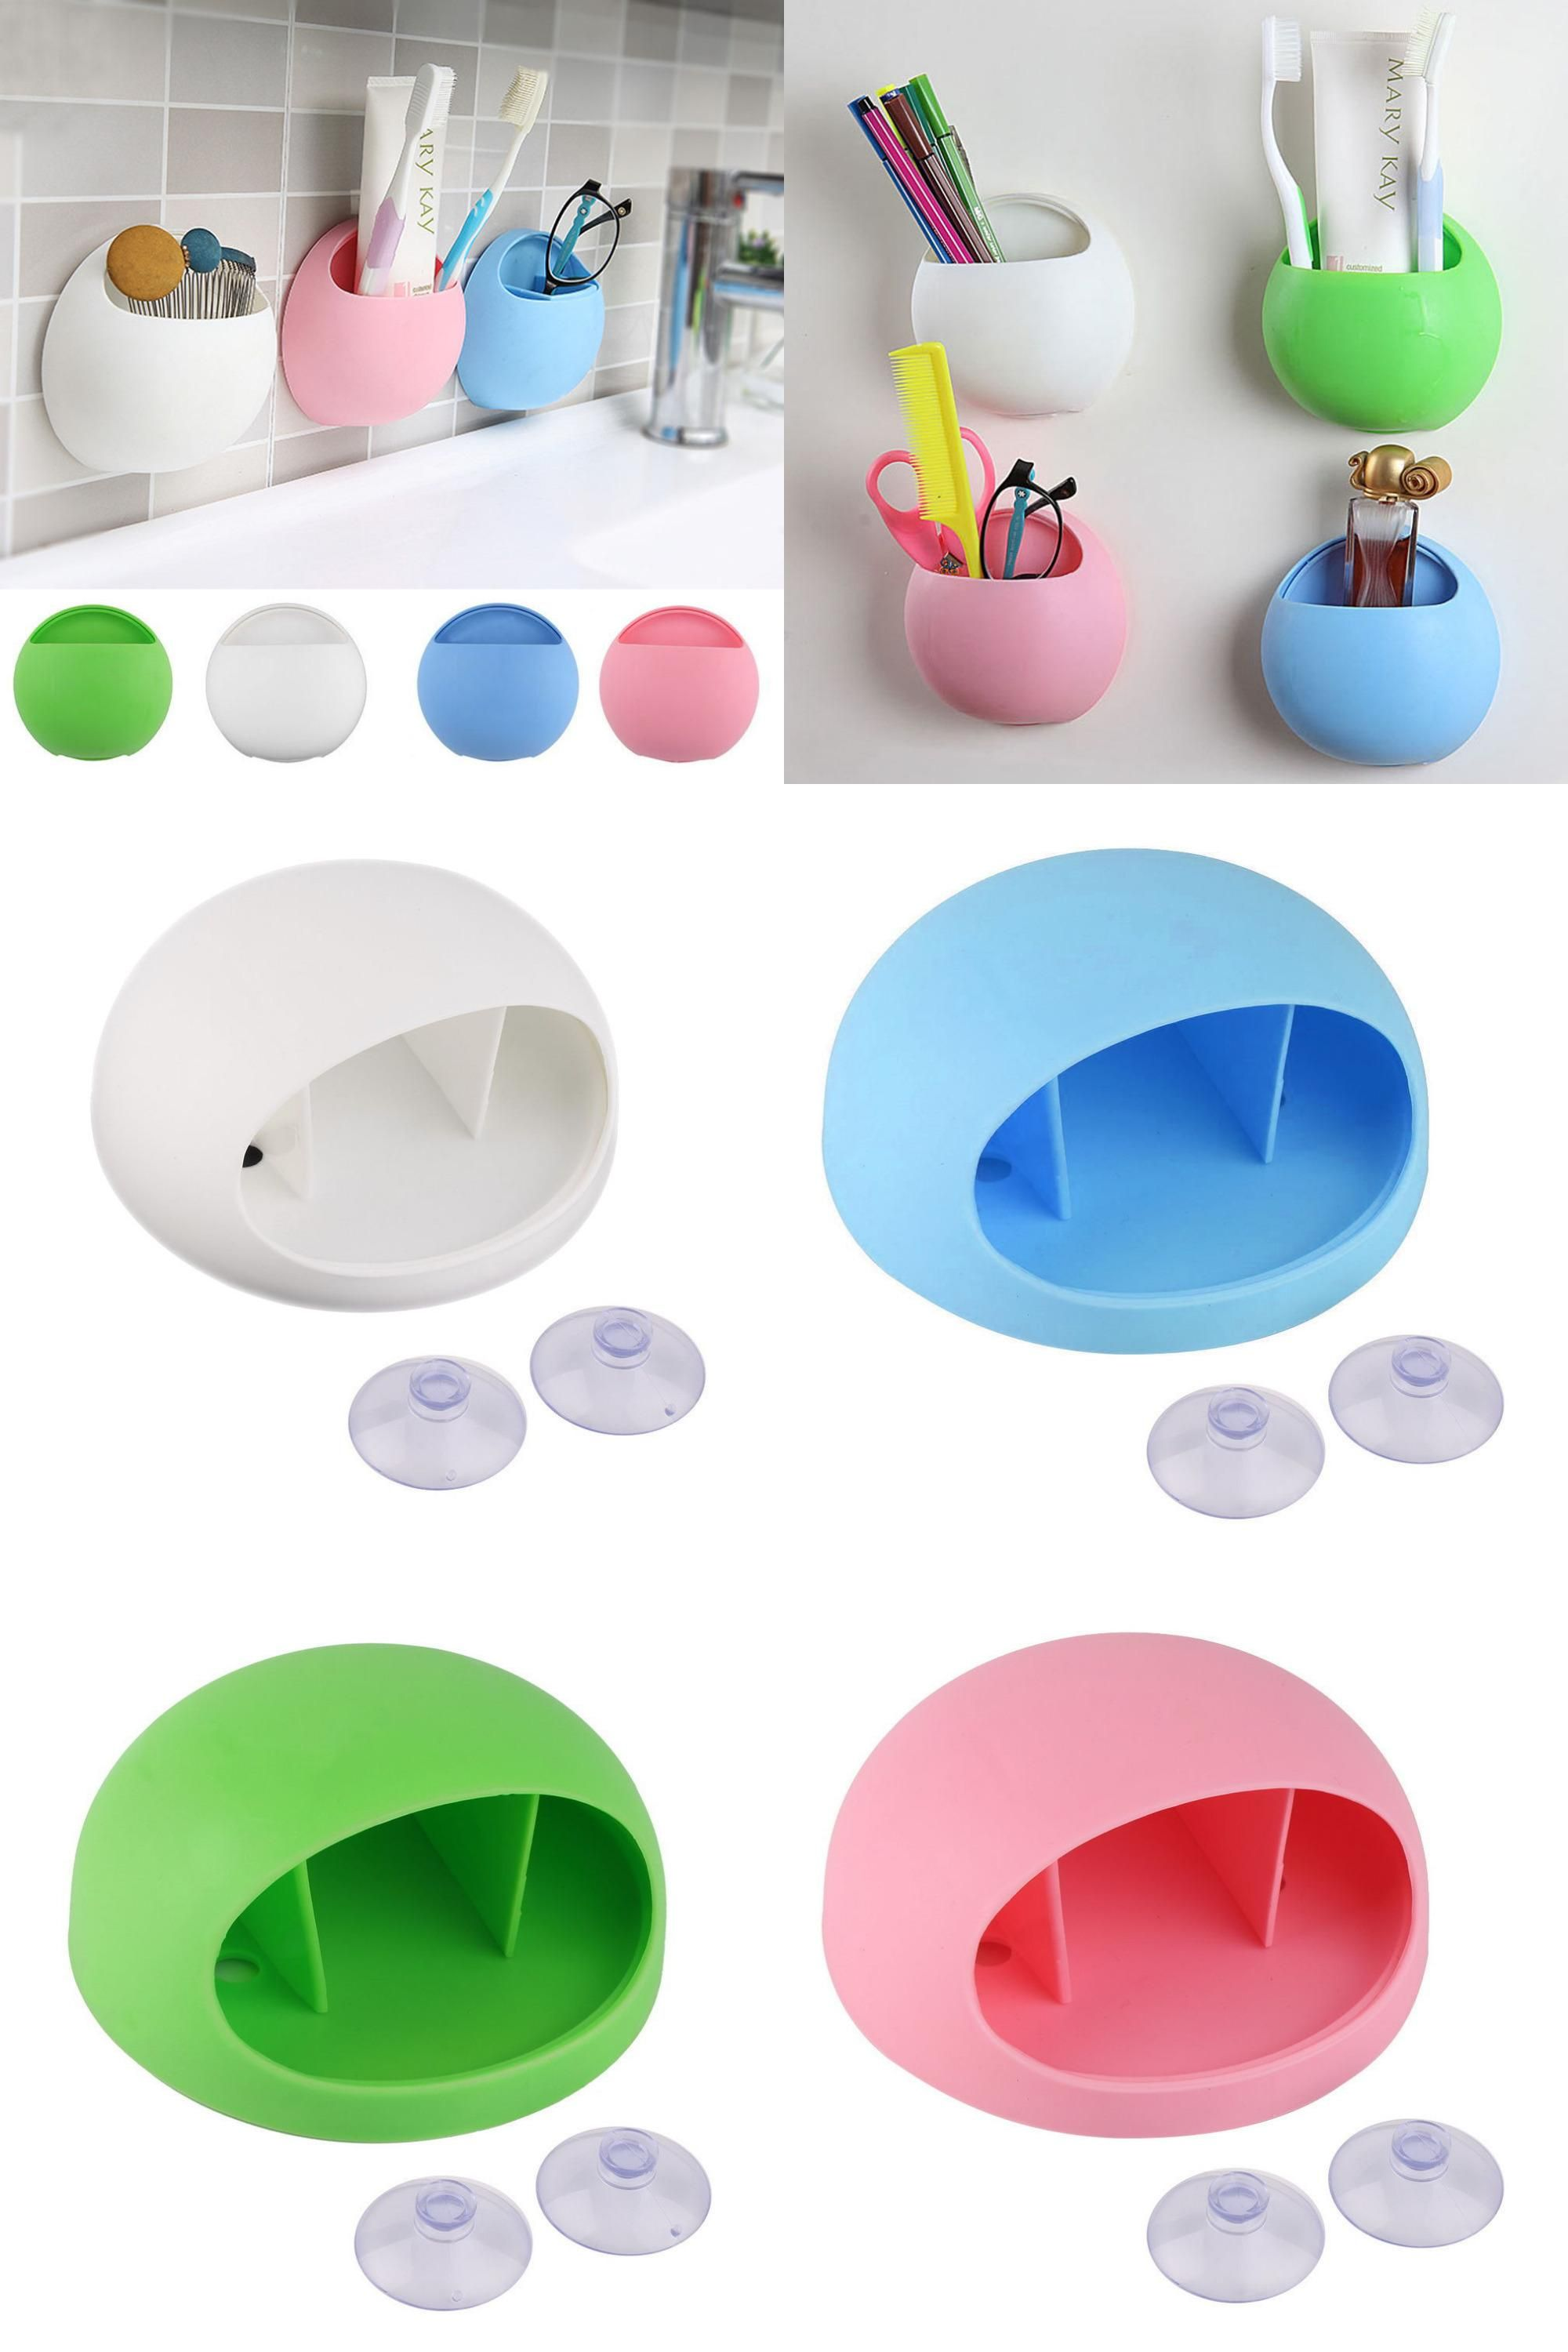 Visit To Buy Cute Eggs Design Toothbrush Holder Suction Hooks - Bathroom cup holders wall mount for bathroom decor ideas